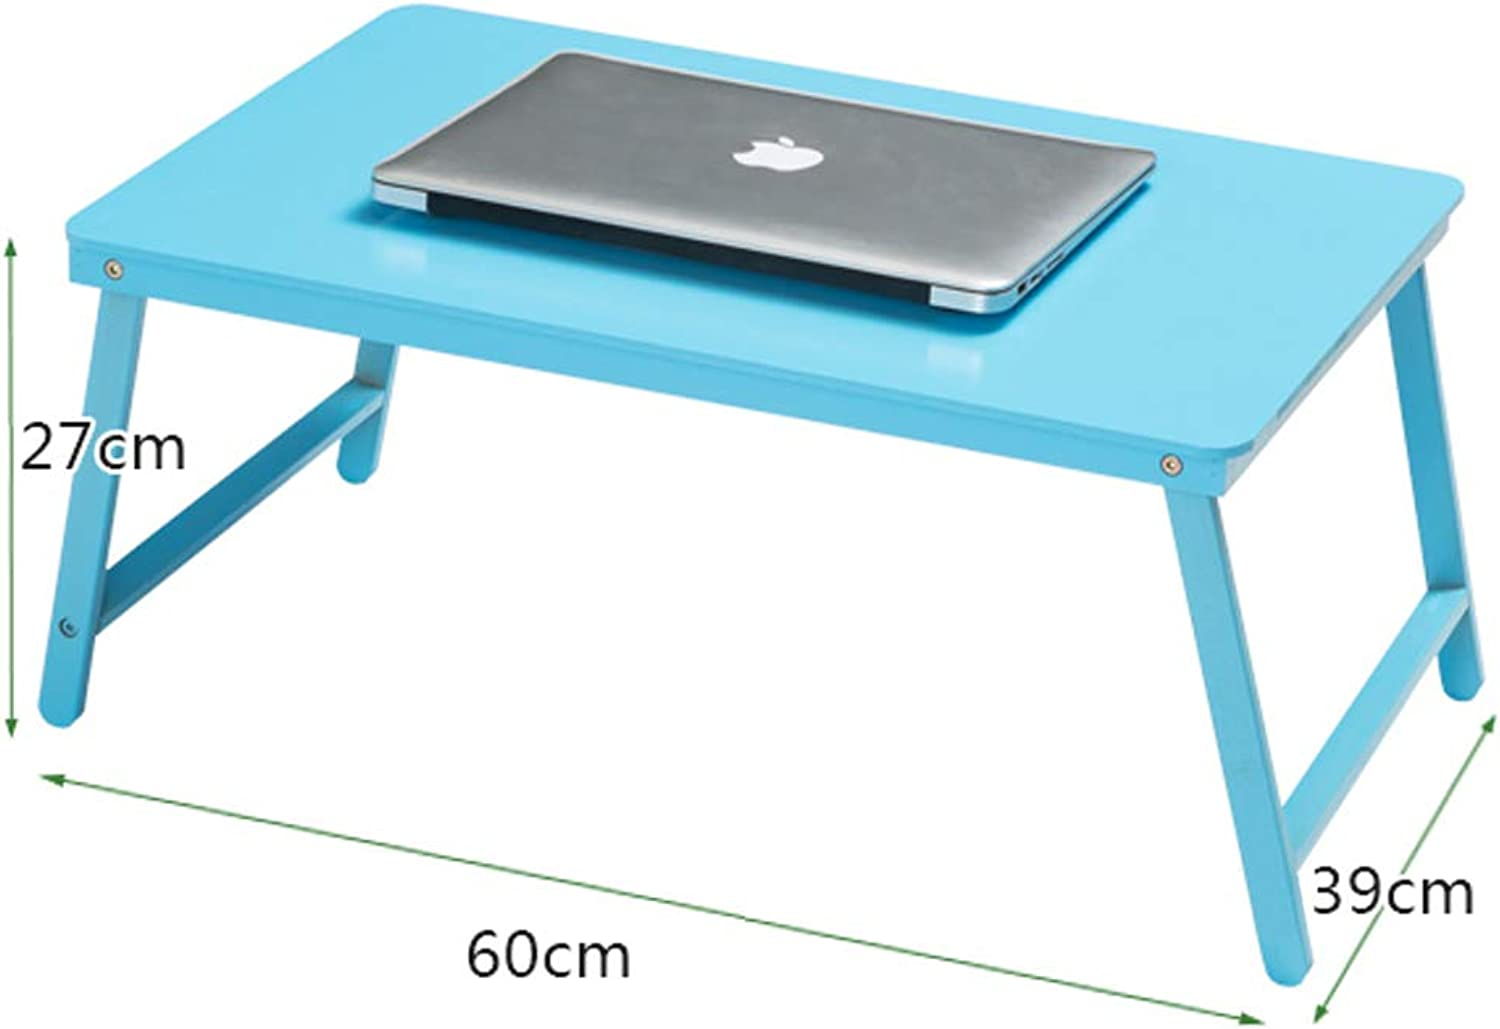 NYDZ Household Foldable Laptop Tables Portable Student Dorm Room Bed Table Lazy Table Desk Learning Table Small Table (color   bluee)